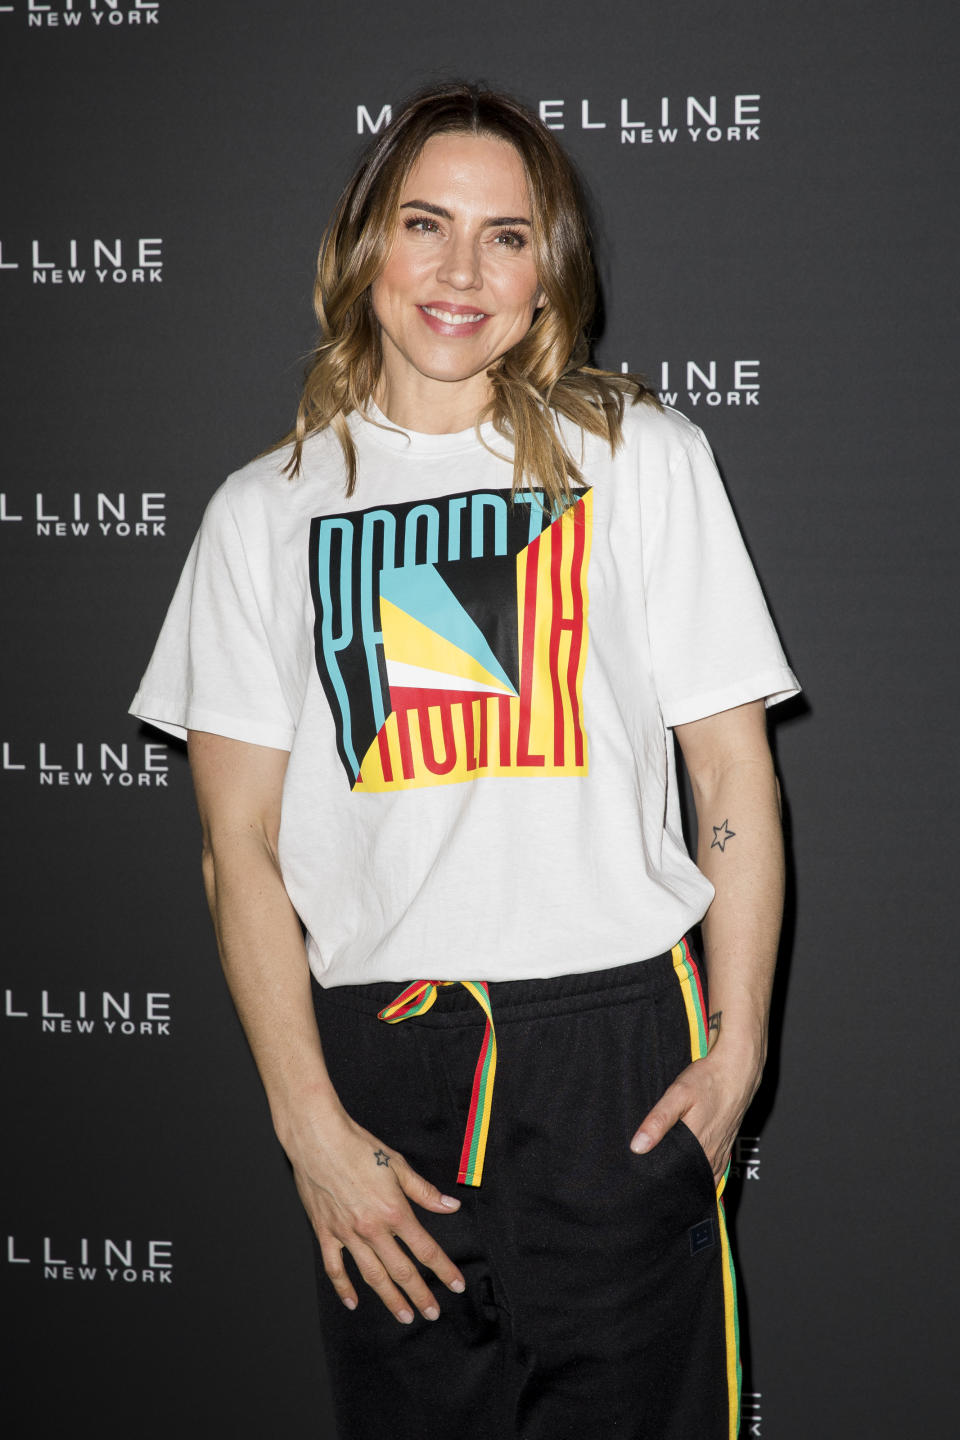 LONDON, ENGLAND - APRIL 30: Mel C attends the Jourdan Dunn X Maybelline Party at Covent Garden on April 30, 2019 in London, England. (Photo by Tristan Fewings/Getty Images)